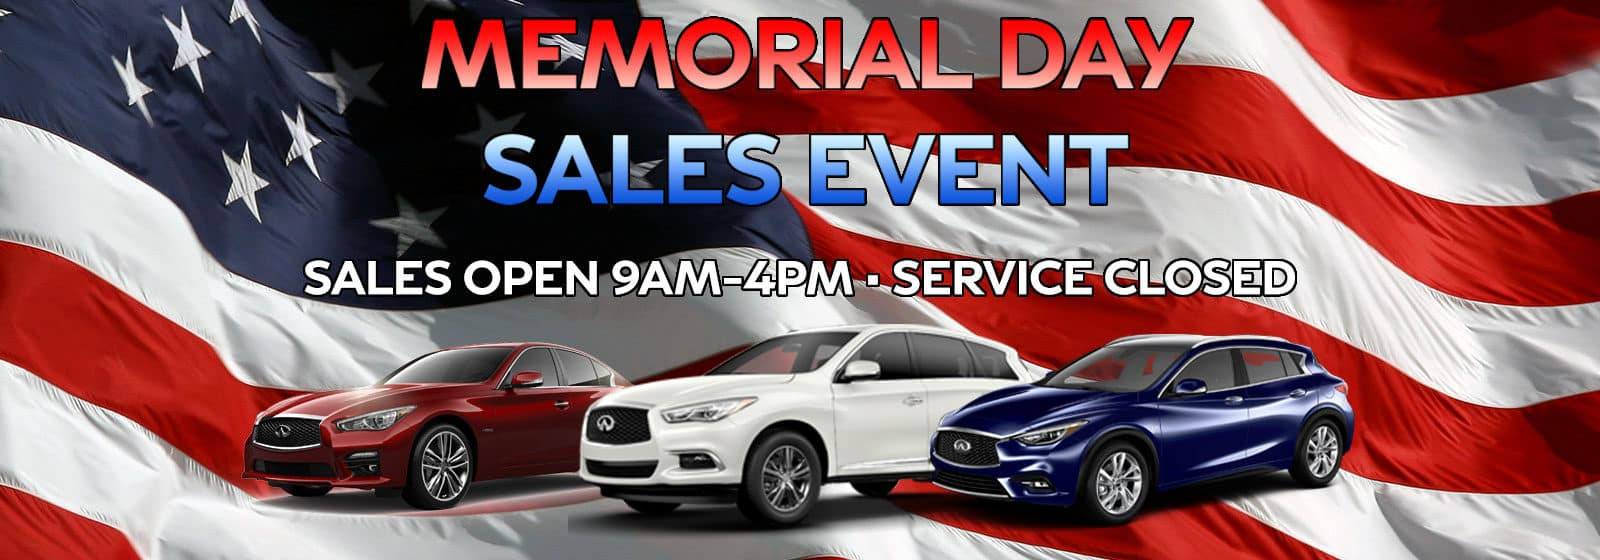 Memorial Day Sales Event Hours at Berman INFINITI of Chicago!